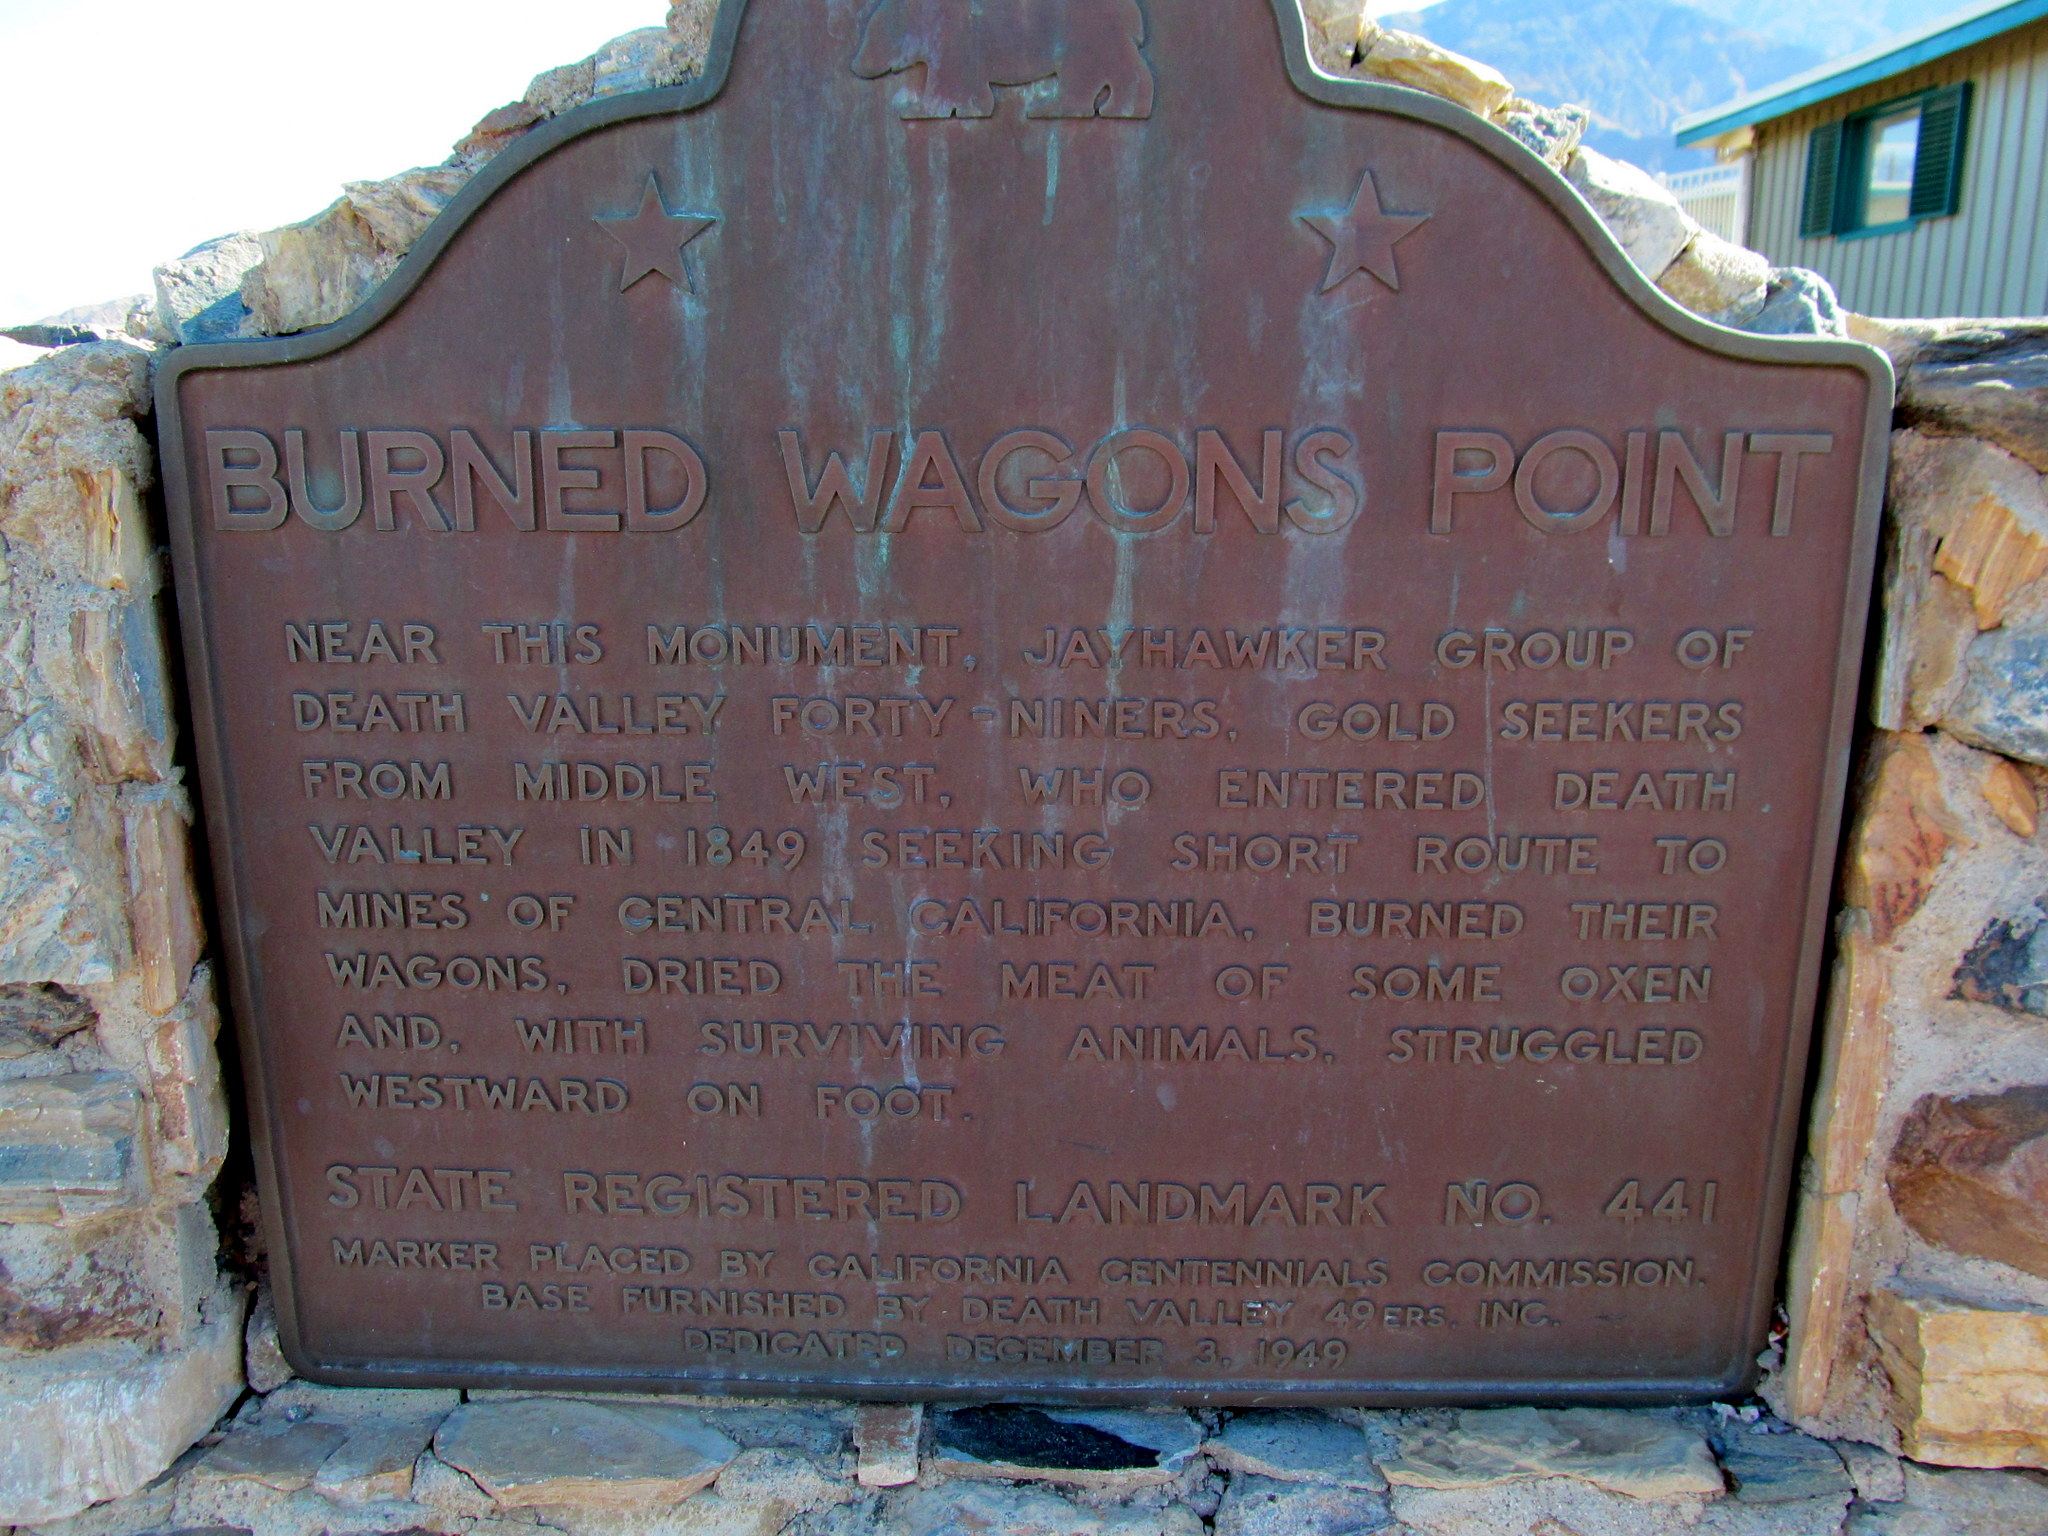 Photo: Burned Wagons Point plaque at Stovepipe Wells